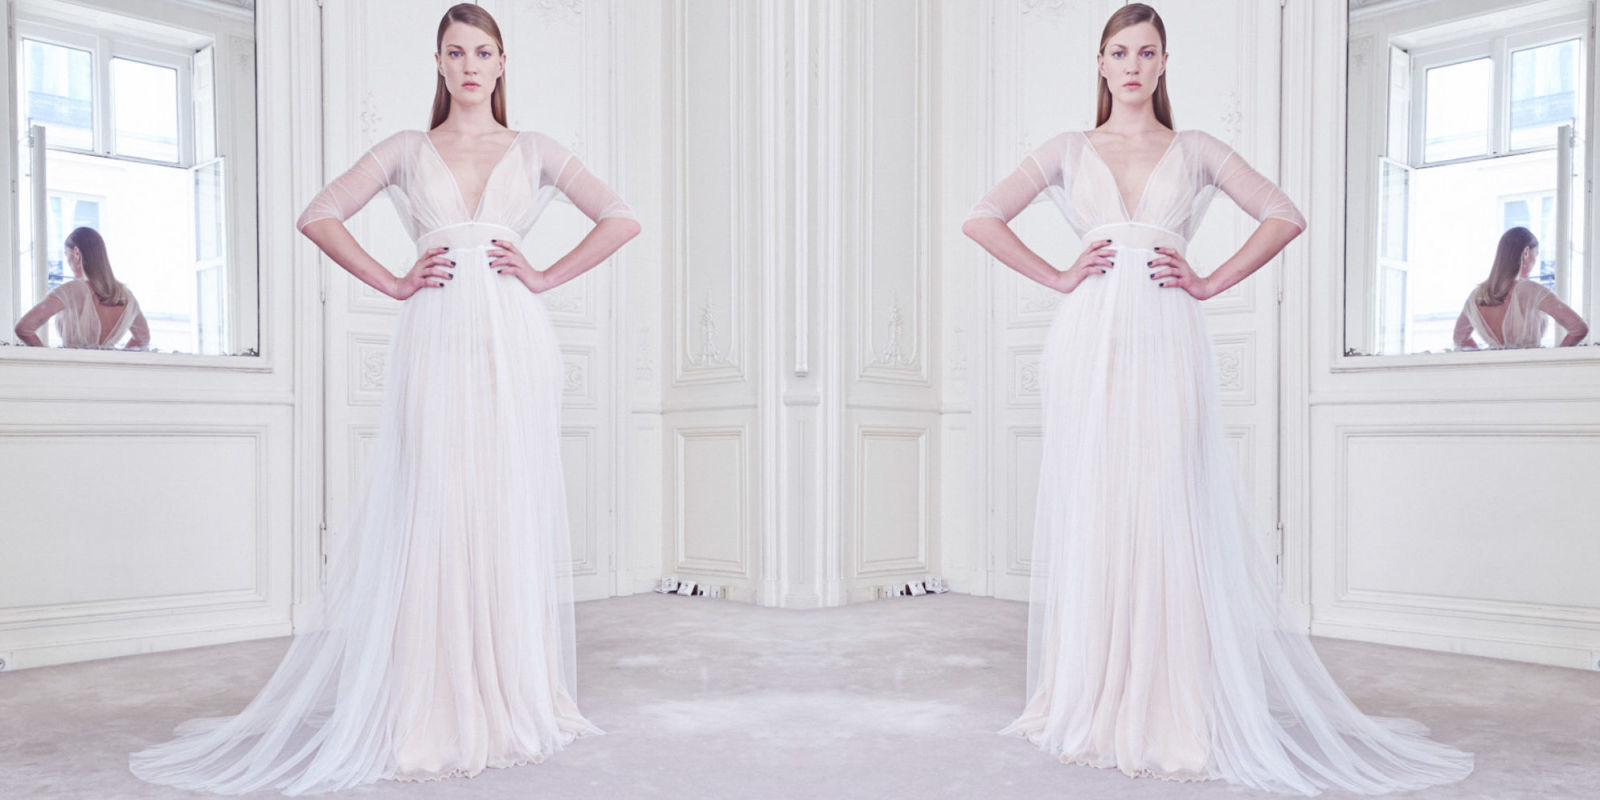 33 New Bridal Designers - The Best New Bridal Gown Designers